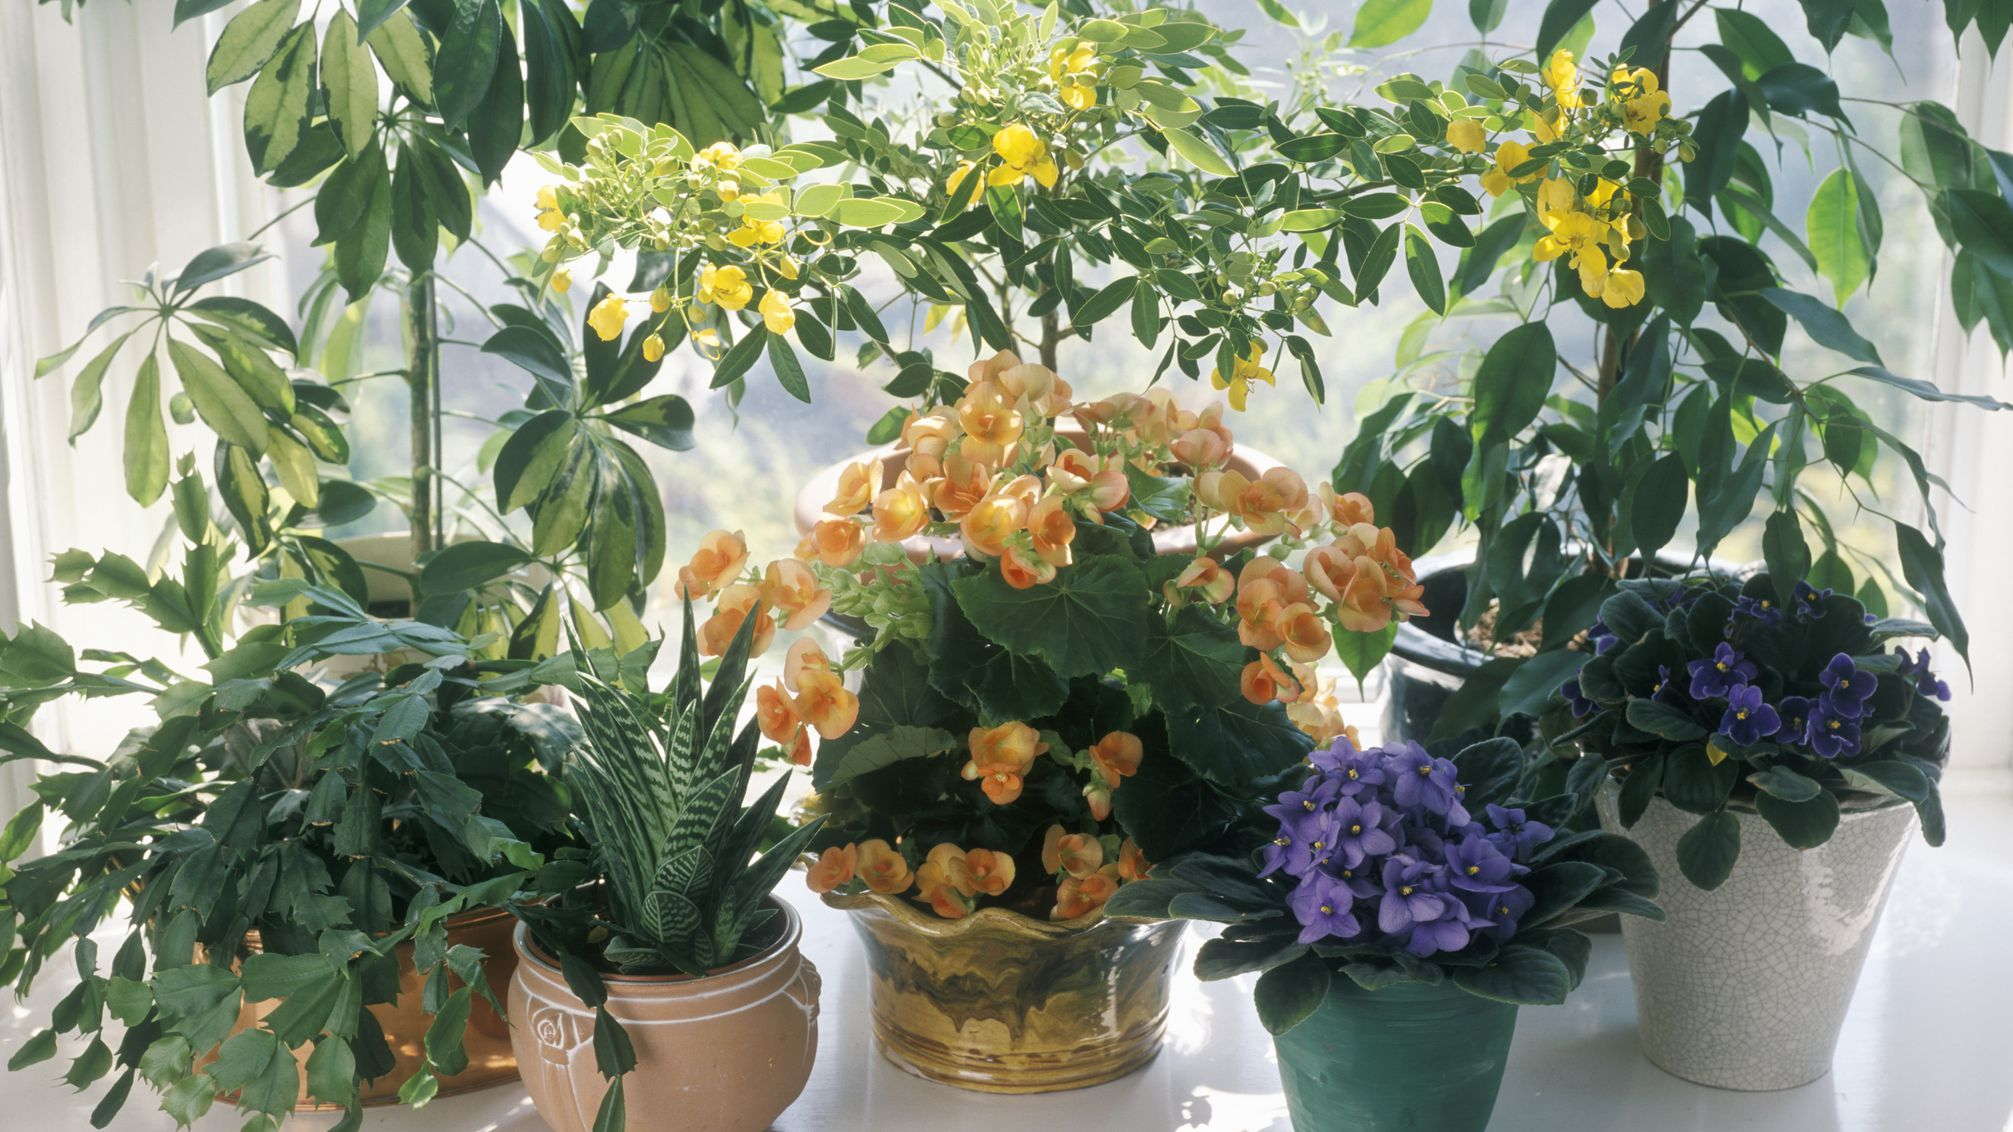 Exotic Angel Plants and How to Care for Them on evergreen identification guide, hydrangea identification guide, daylily identification guide, flower identification guide, plant identification guide, leaf identification guide, hyacinth identification guide, seed identification guide, weed identification guide, herb identification guide, succulents identification guide, orchid identification guide, white identification guide, rose identification guide, furniture identification guide, vegetable identification guide, grass identification guide, perennial identification guide, wildflower identification guide, vine identification guide,